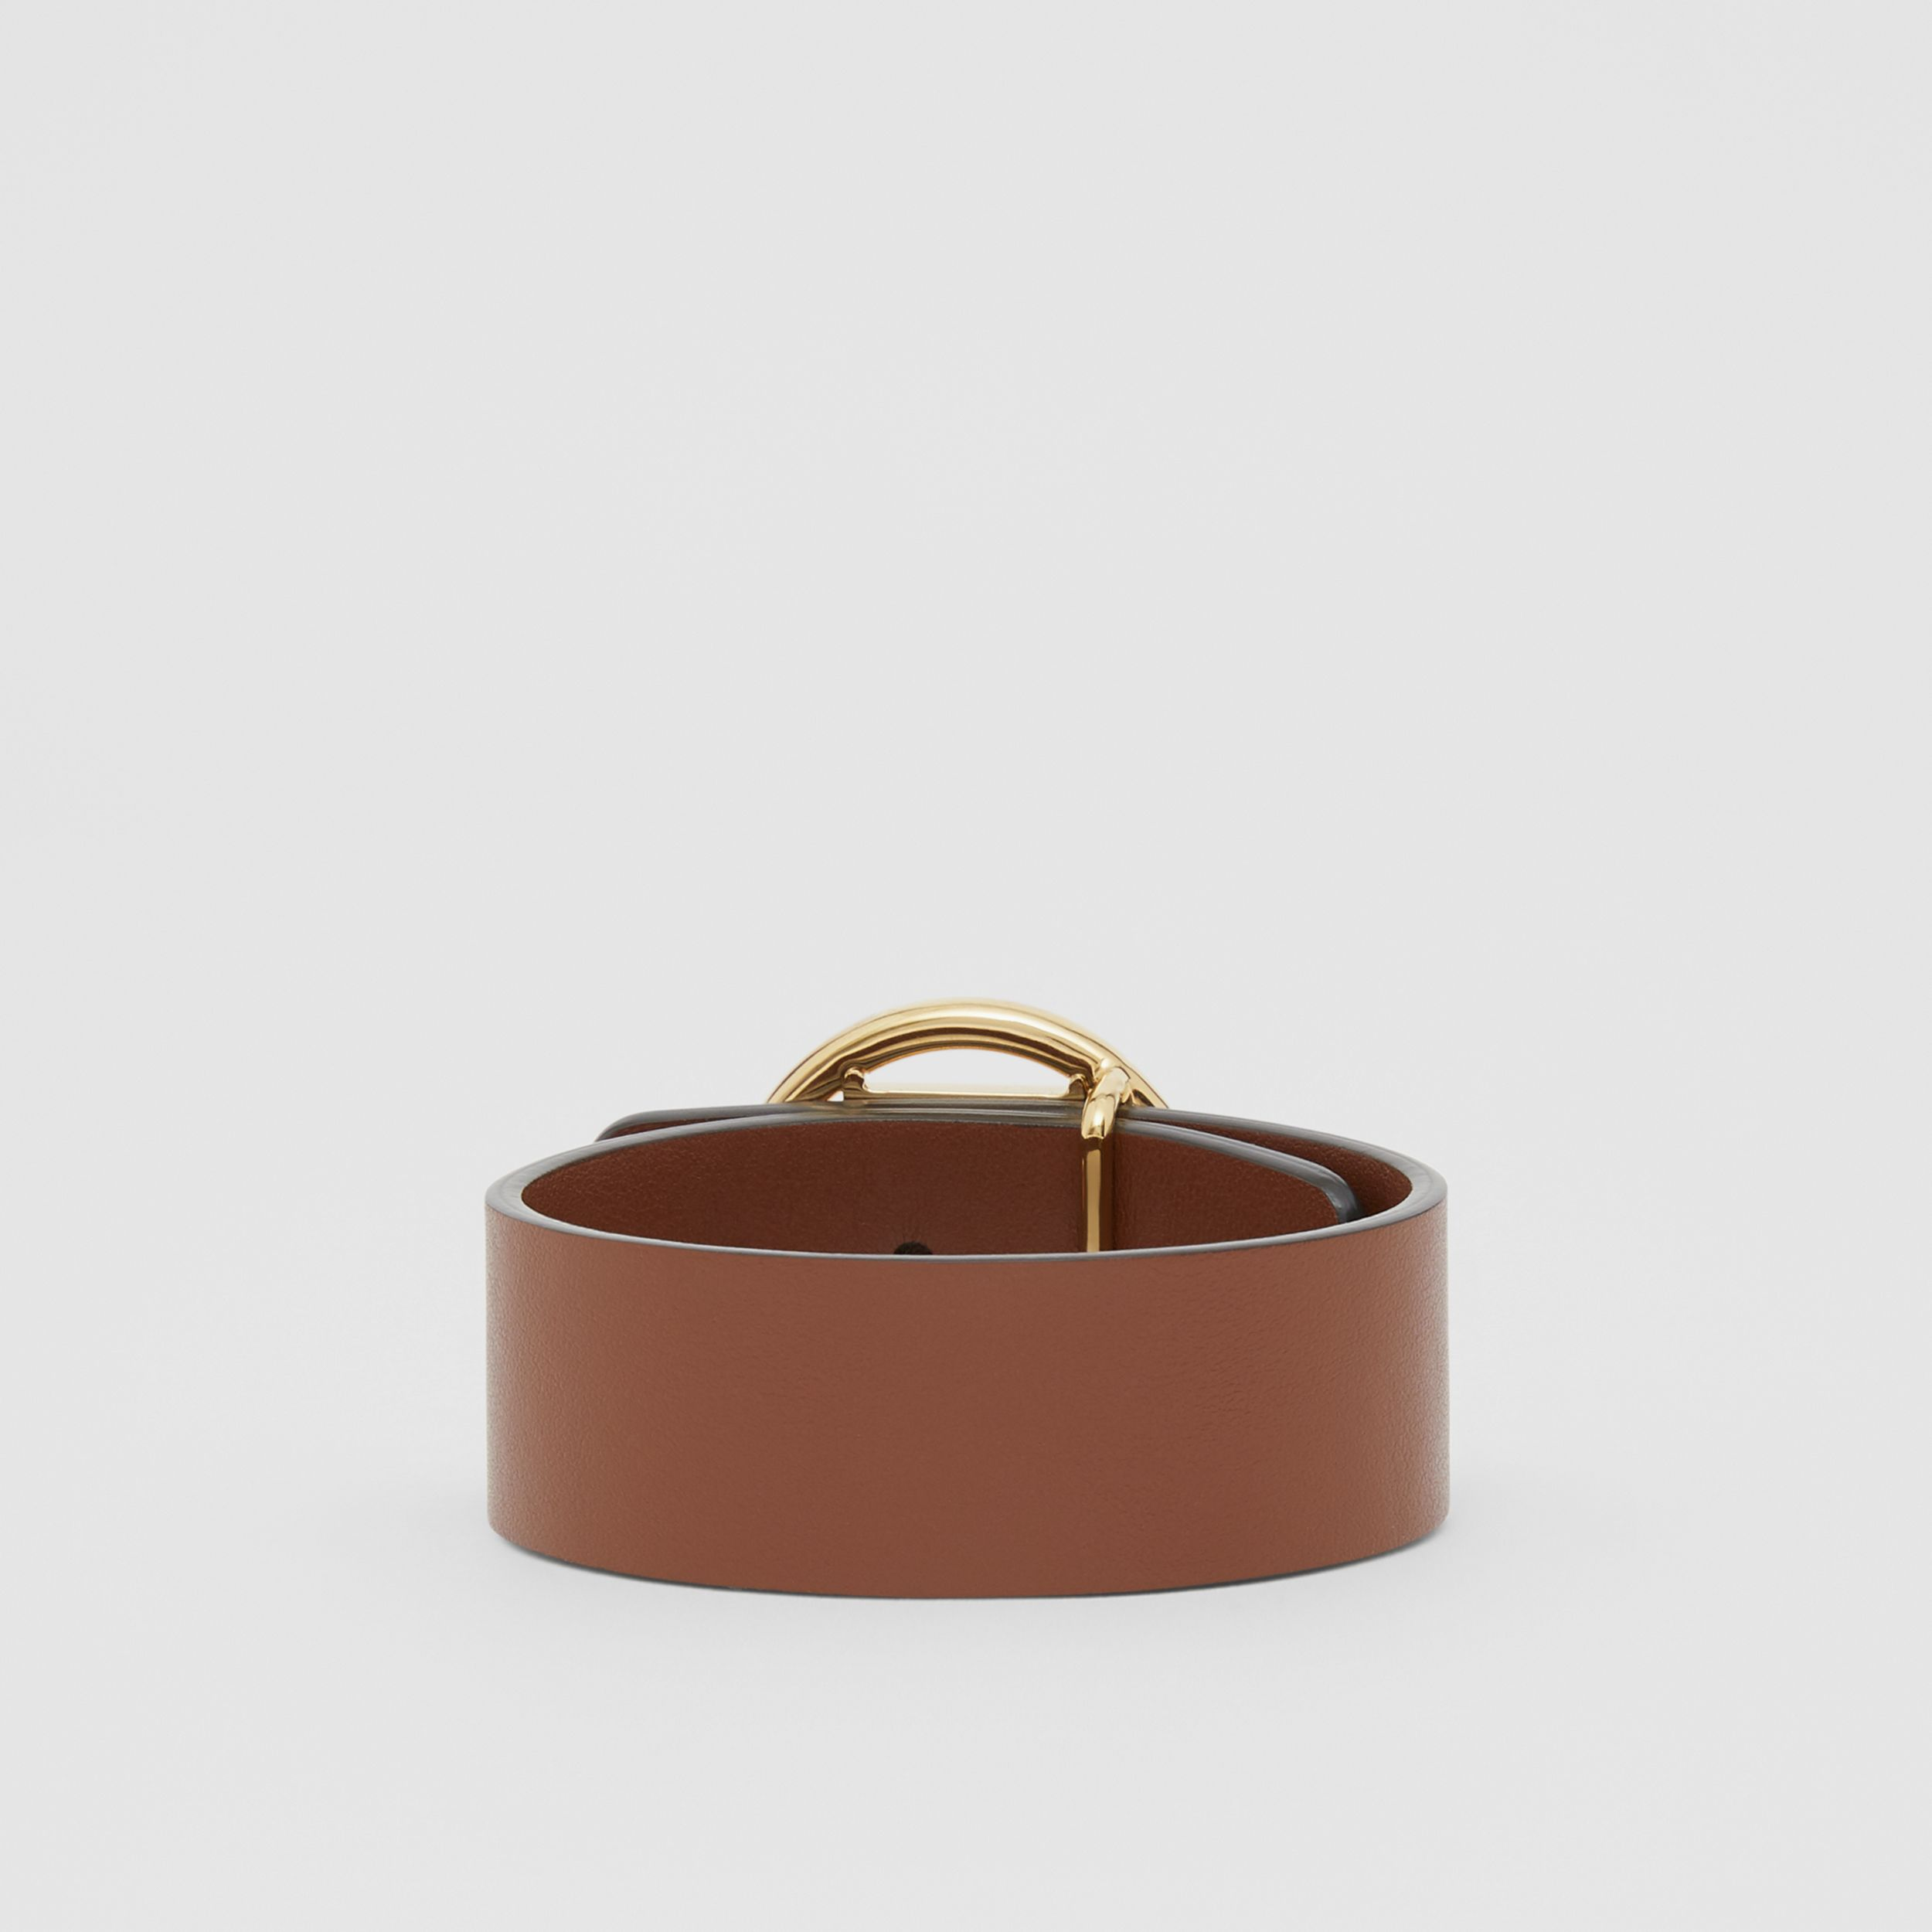 Monogram Motif Leather Bracelet in Tan - Women | Burberry - 3